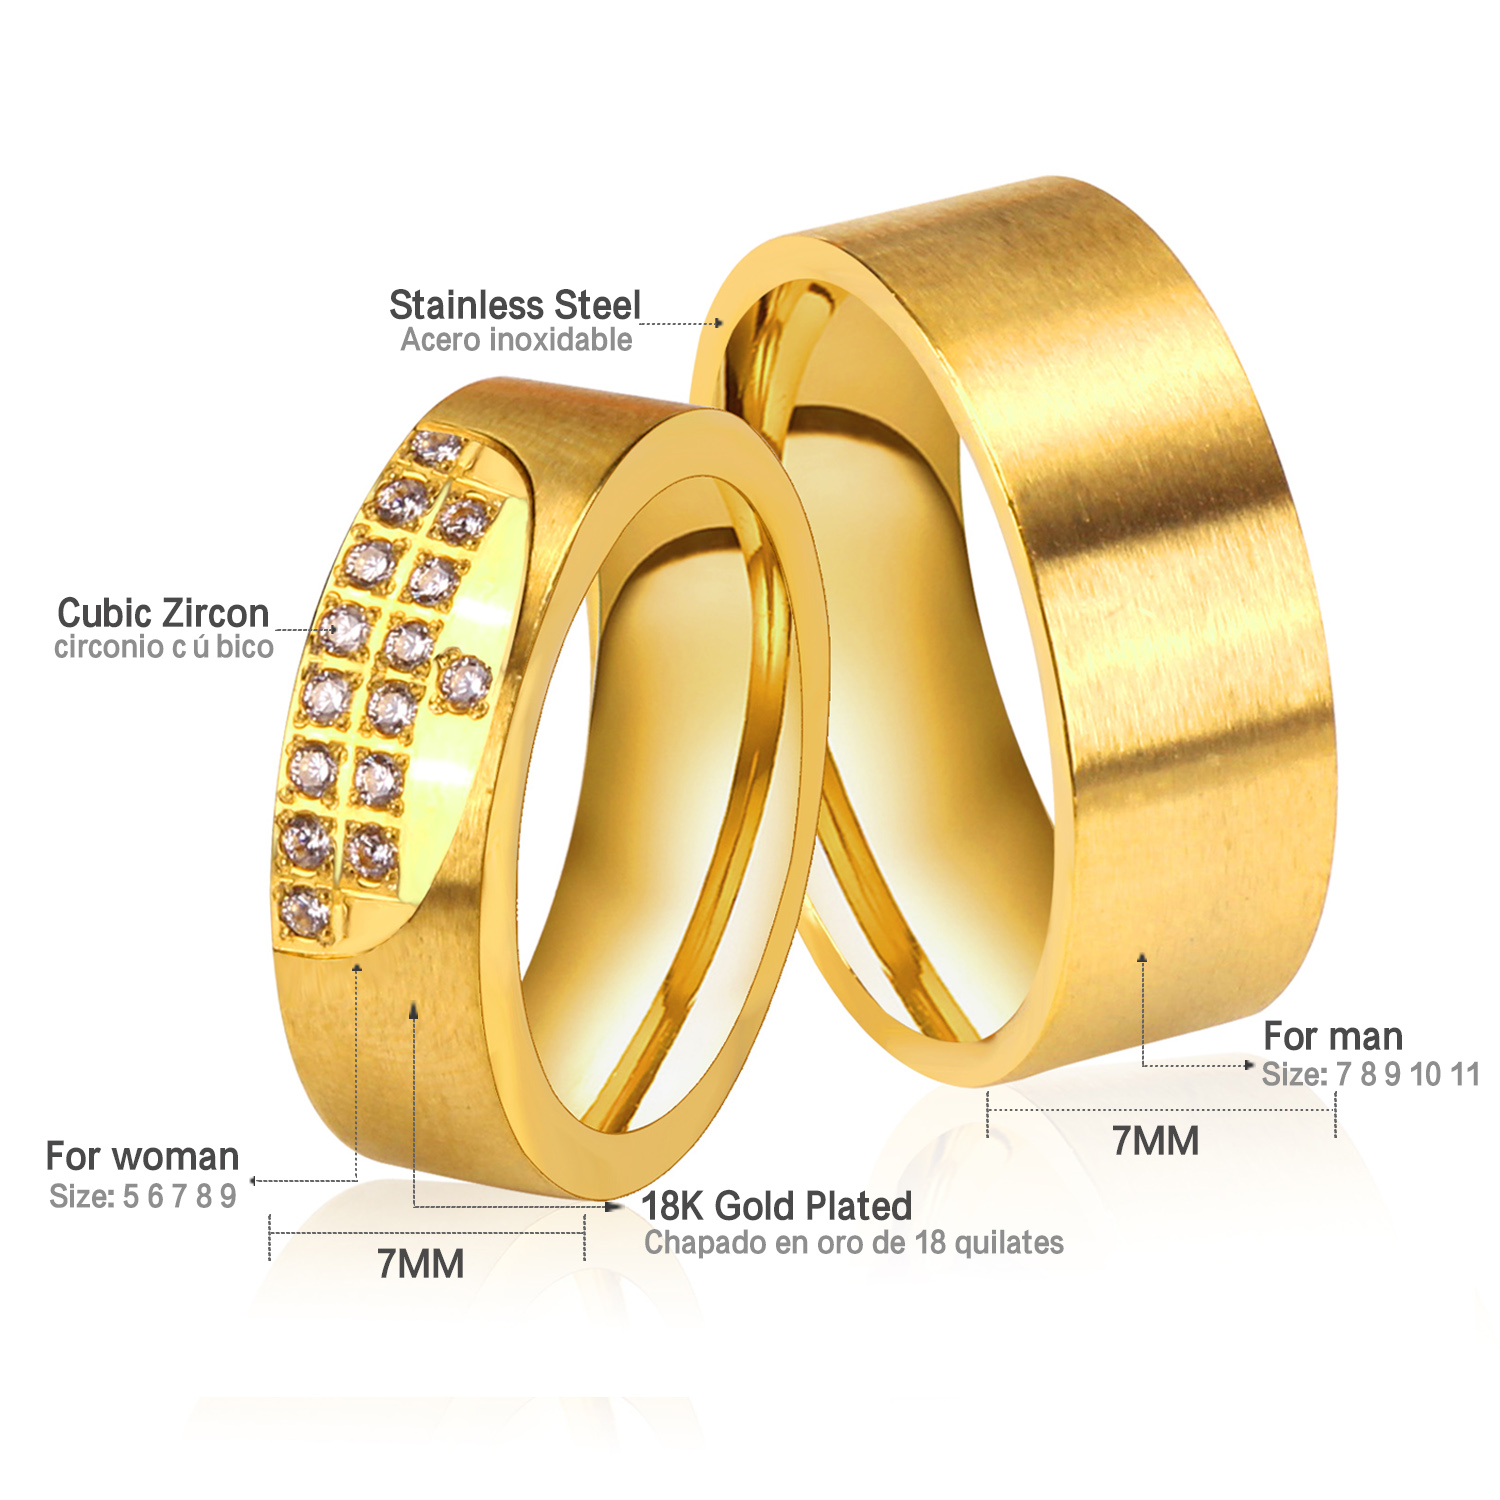 rope double ring products rings high mens inlaid s men gold wedding collections for polished evermarker edges